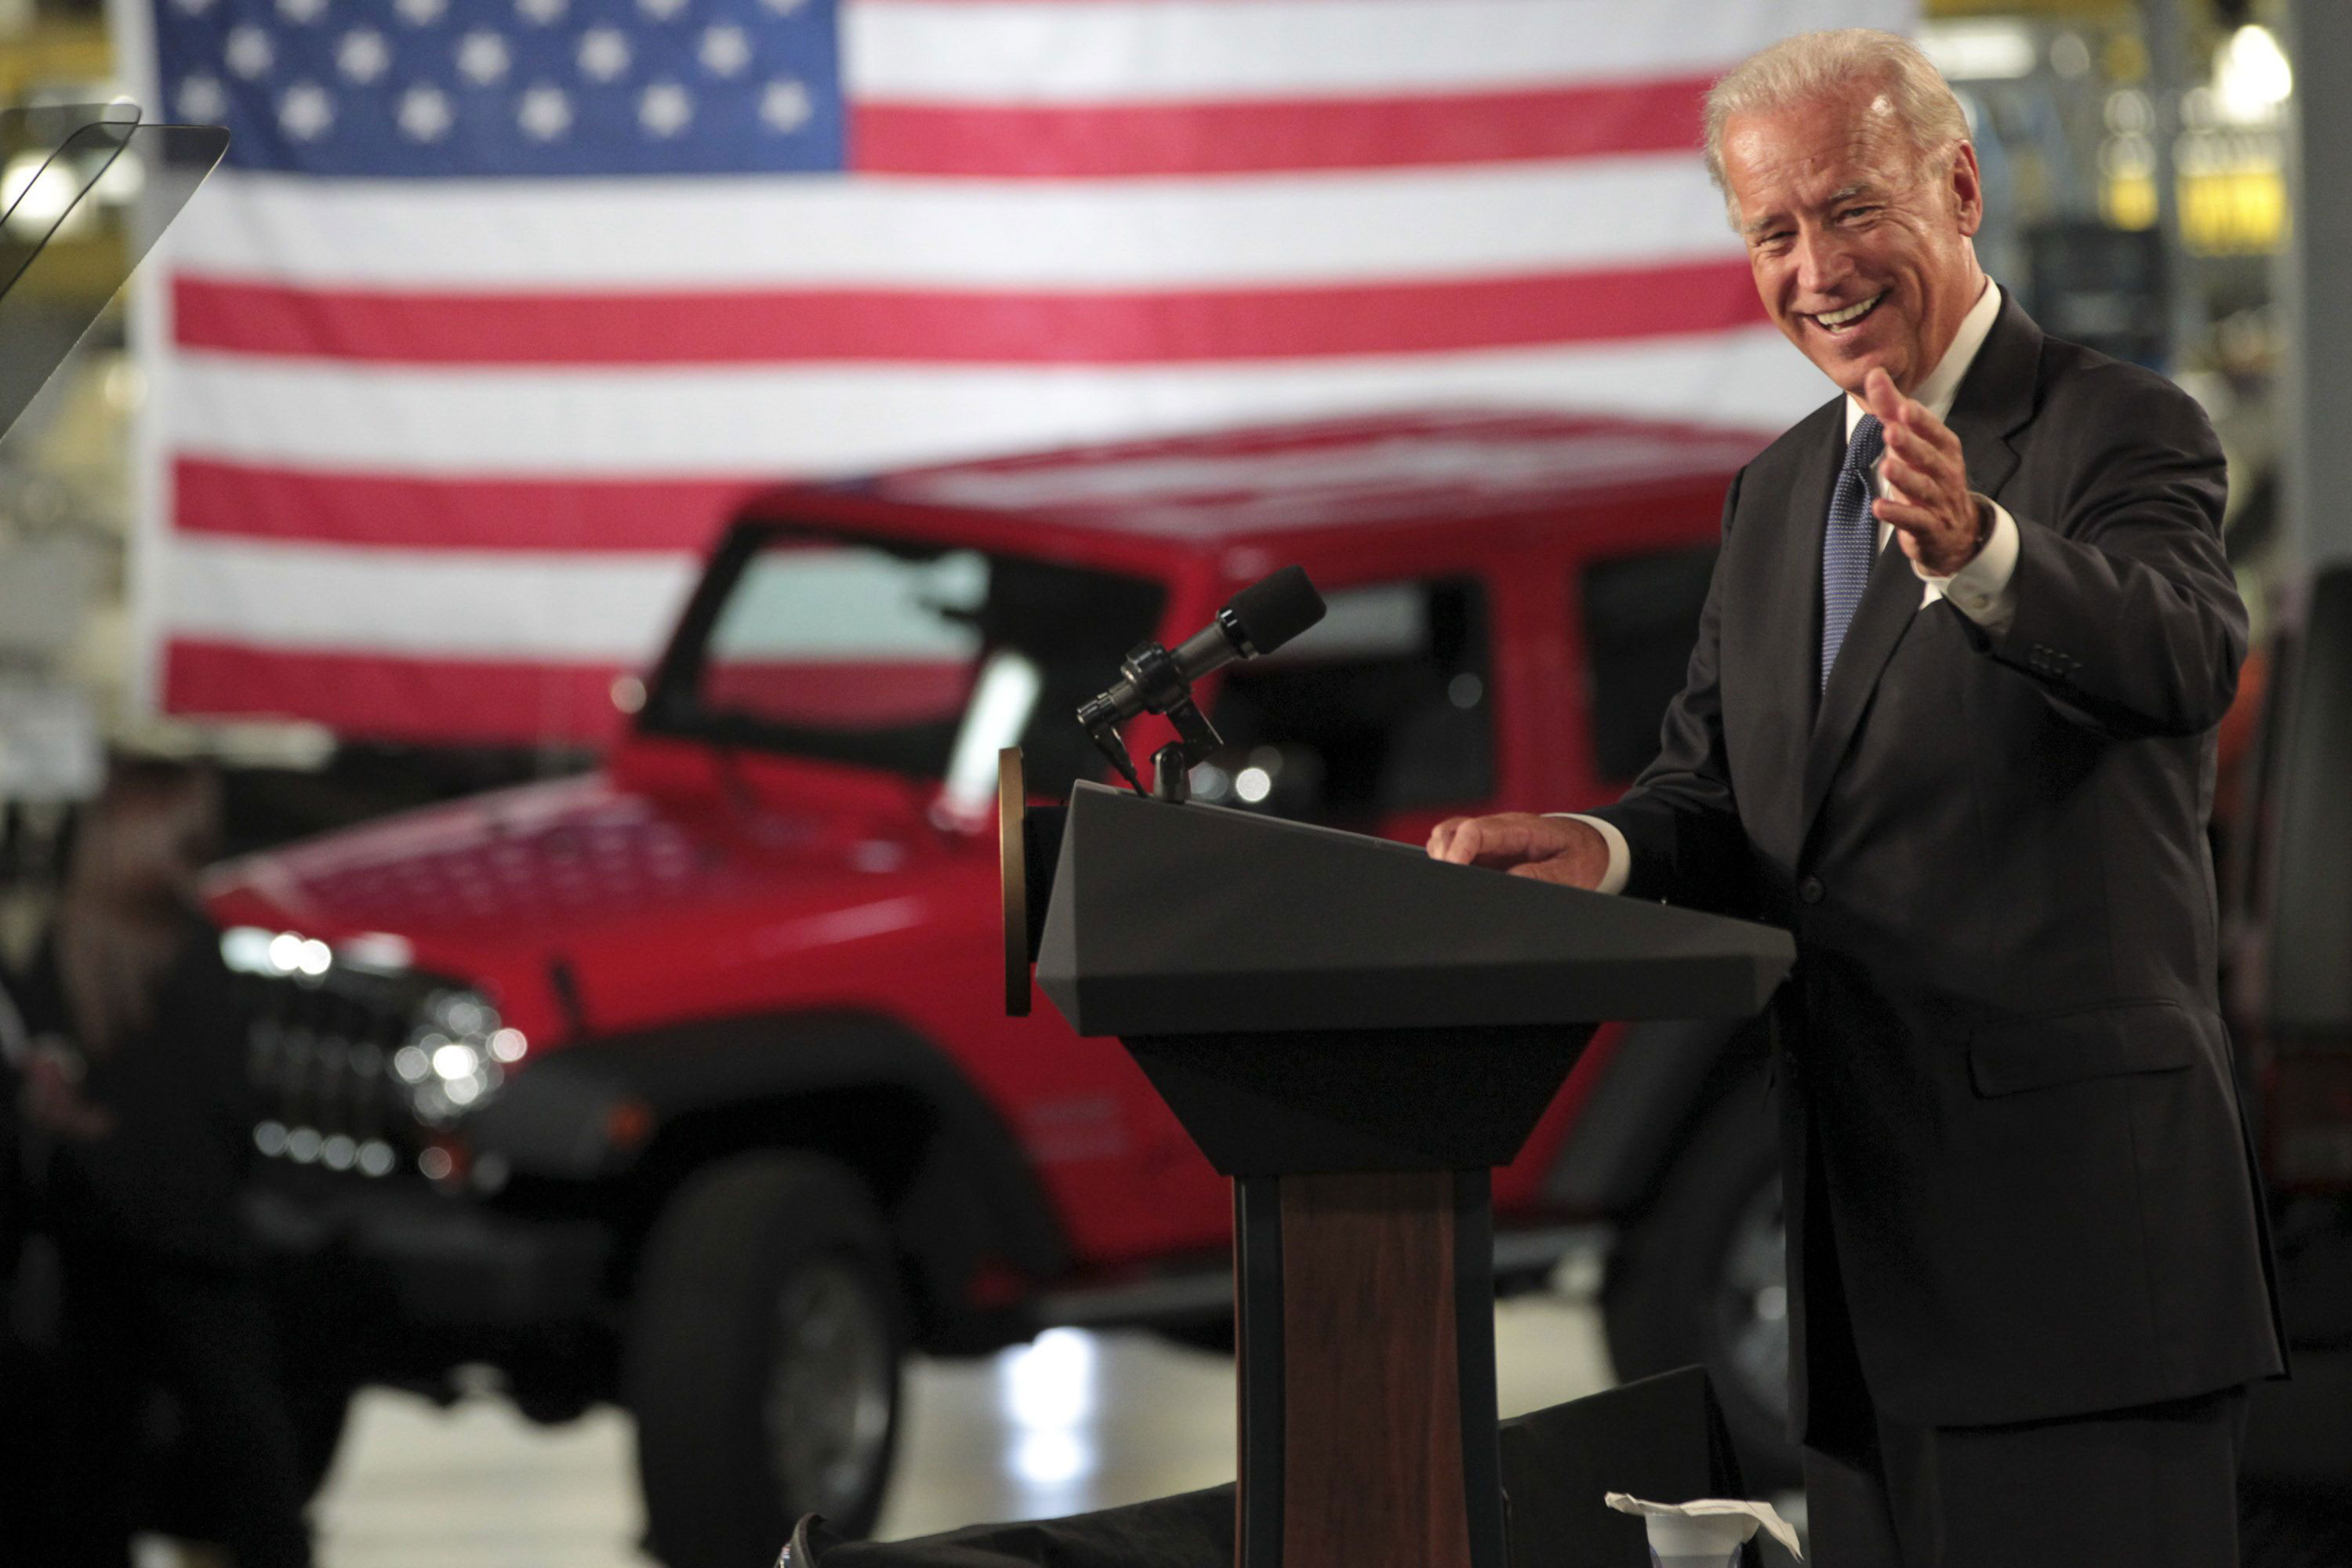 The new corporate conundrum: To congratulate President-Elect Biden or not?